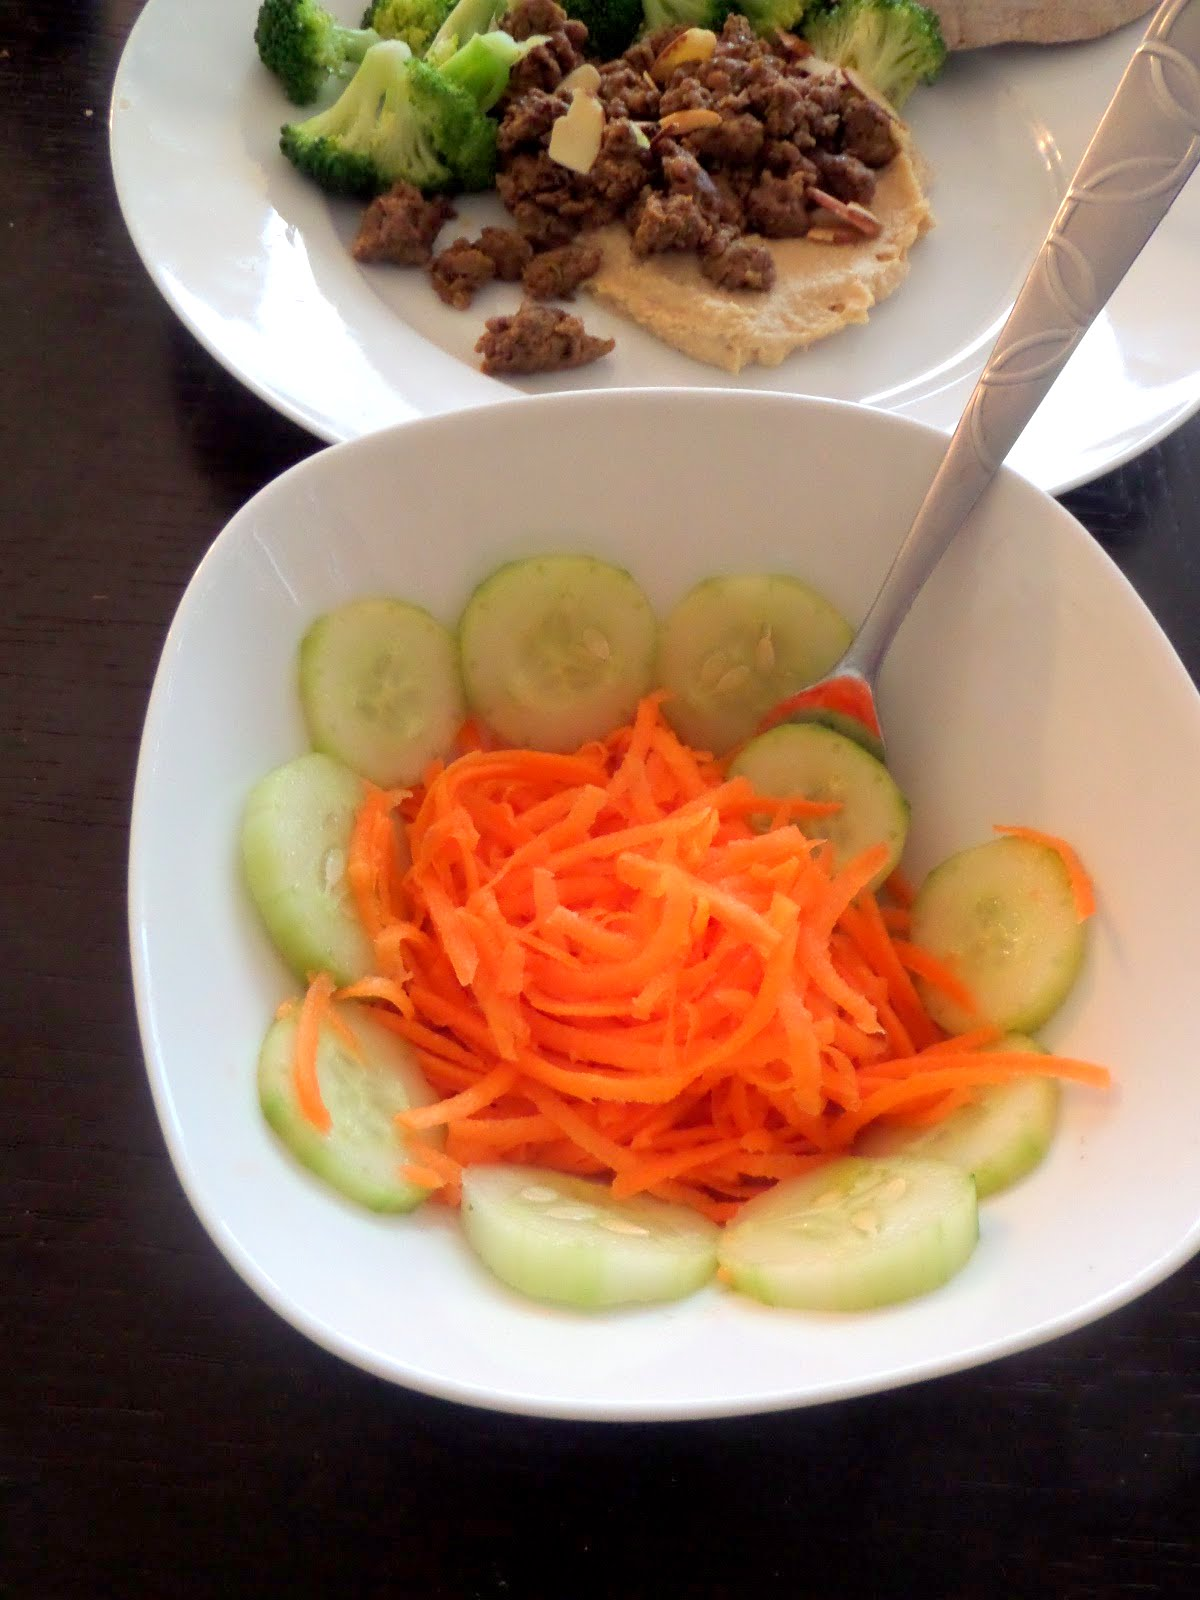 Simple Carrot and Cucumber Salad:  A 3 ingredient salad of carrots, cucumbers and lemon juice.  So simple yet so tasty.